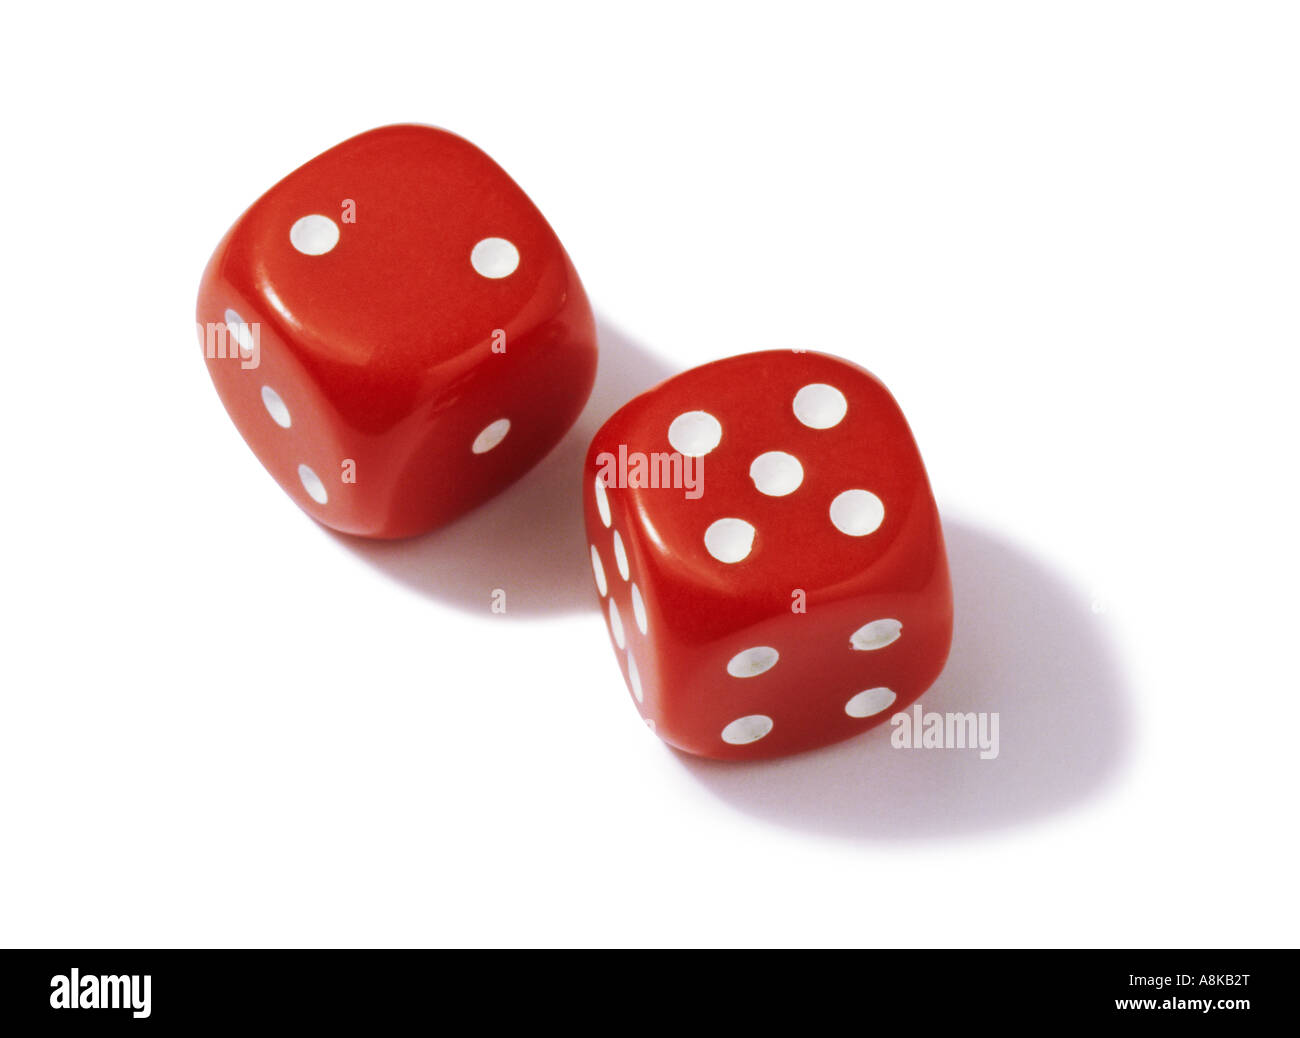 A pair of red dice - Stock Image